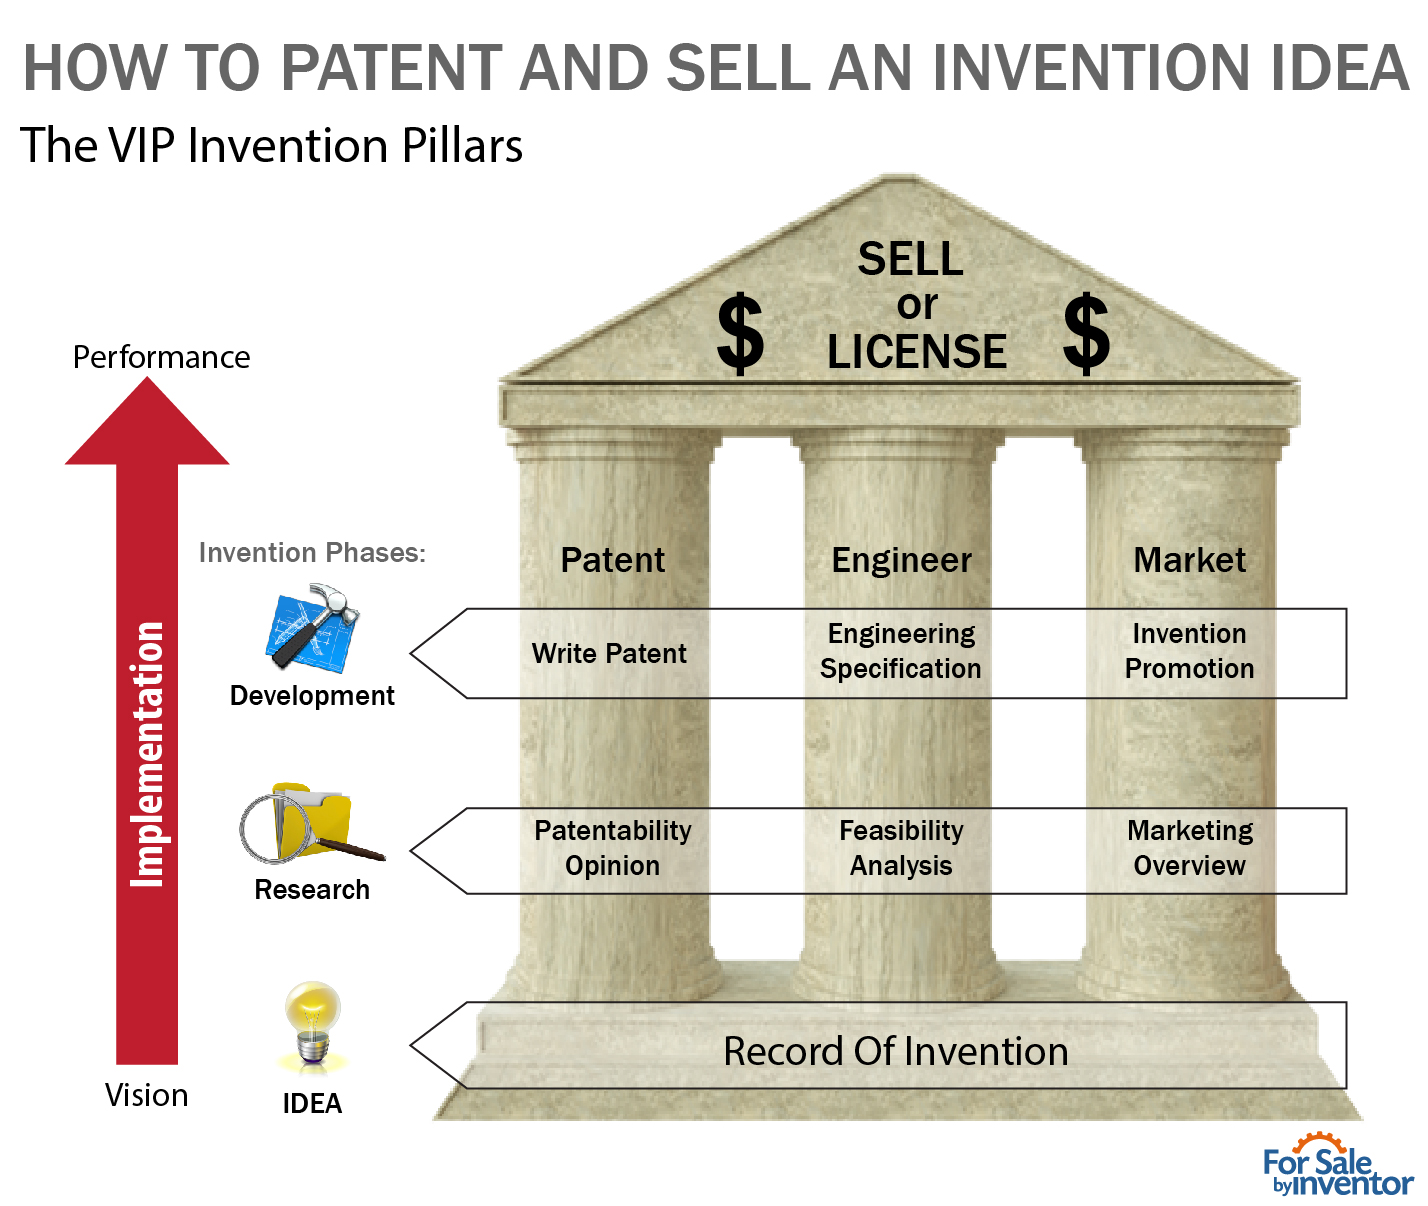 How To Patent and Sell an Invention Idea